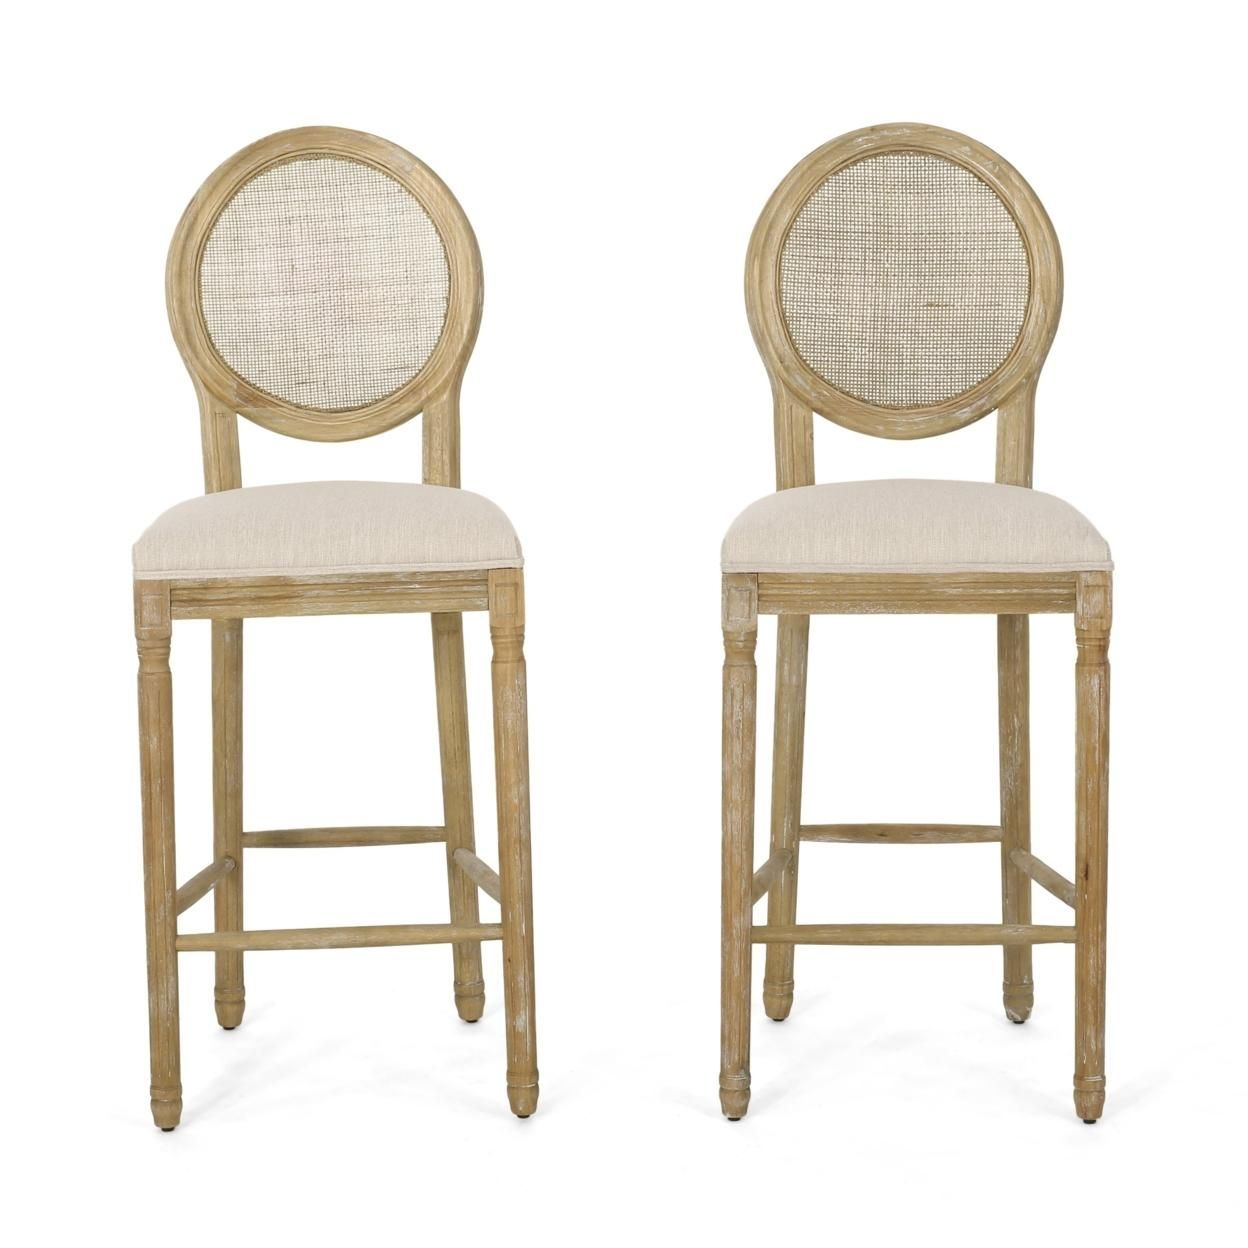 Salton French Country Wooden Barstools with Upholstered Seating (Set of 2)